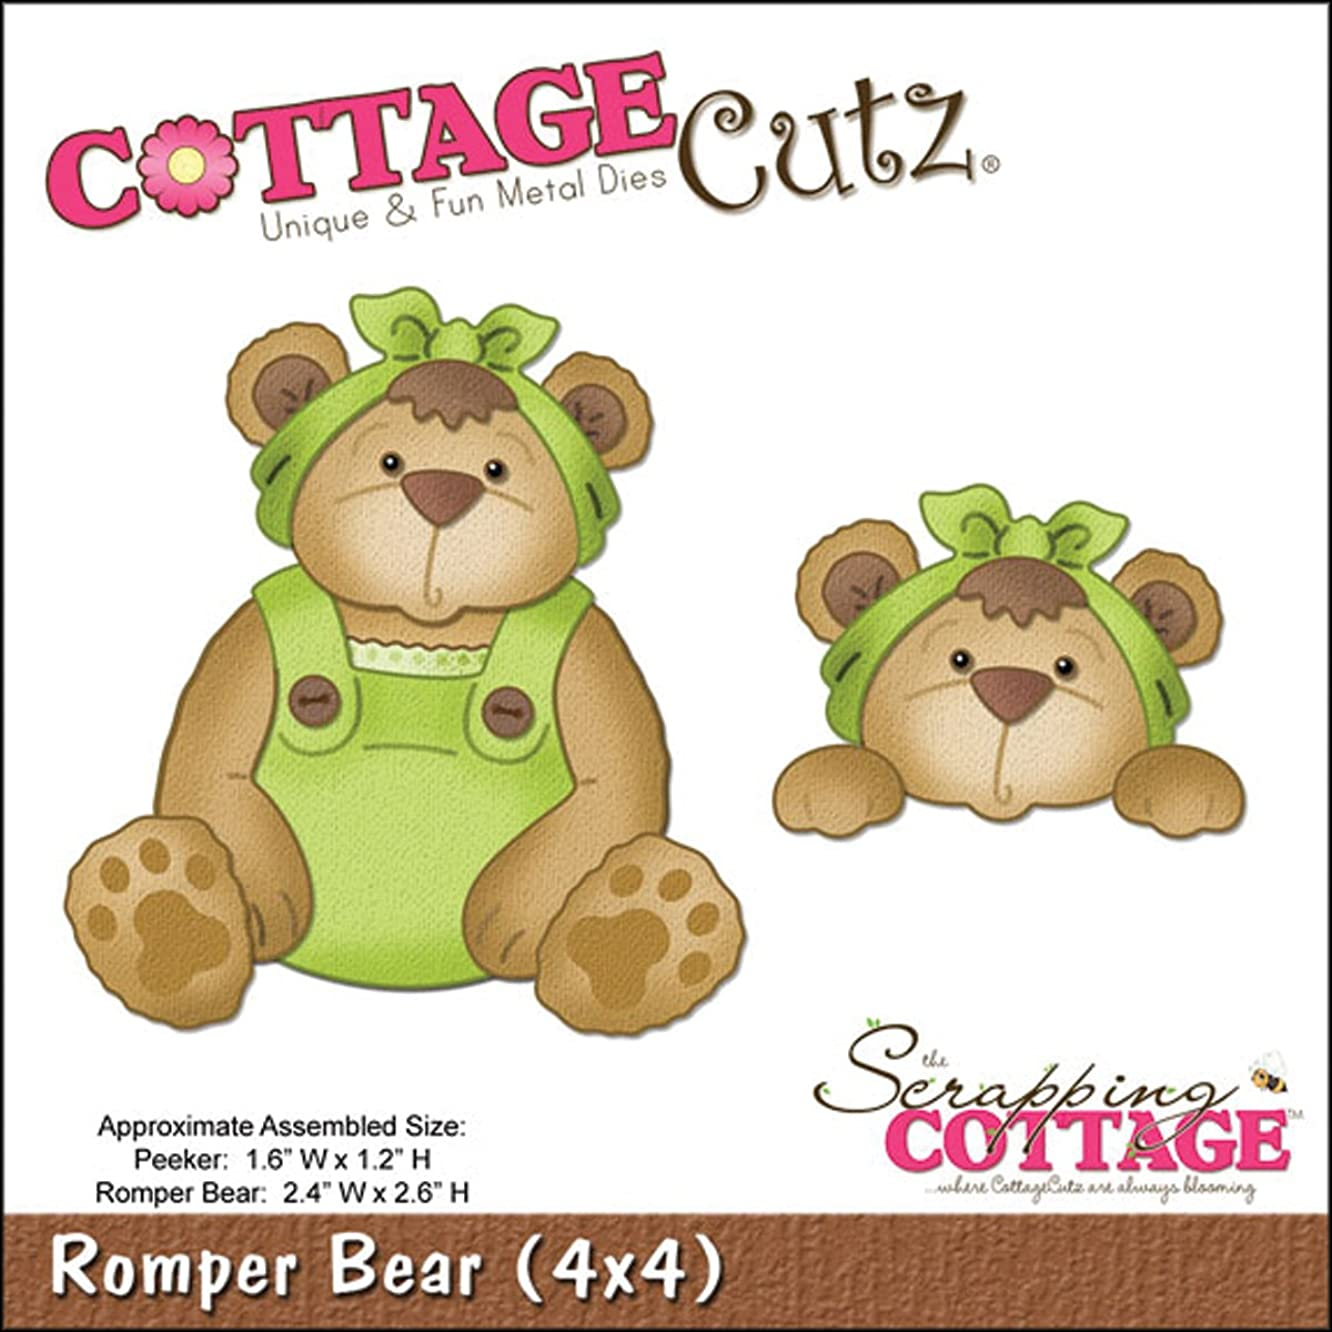 CottageCutz 4X4501 Die Cuts with Foam, 4 by 4-Inch, Romper Bear